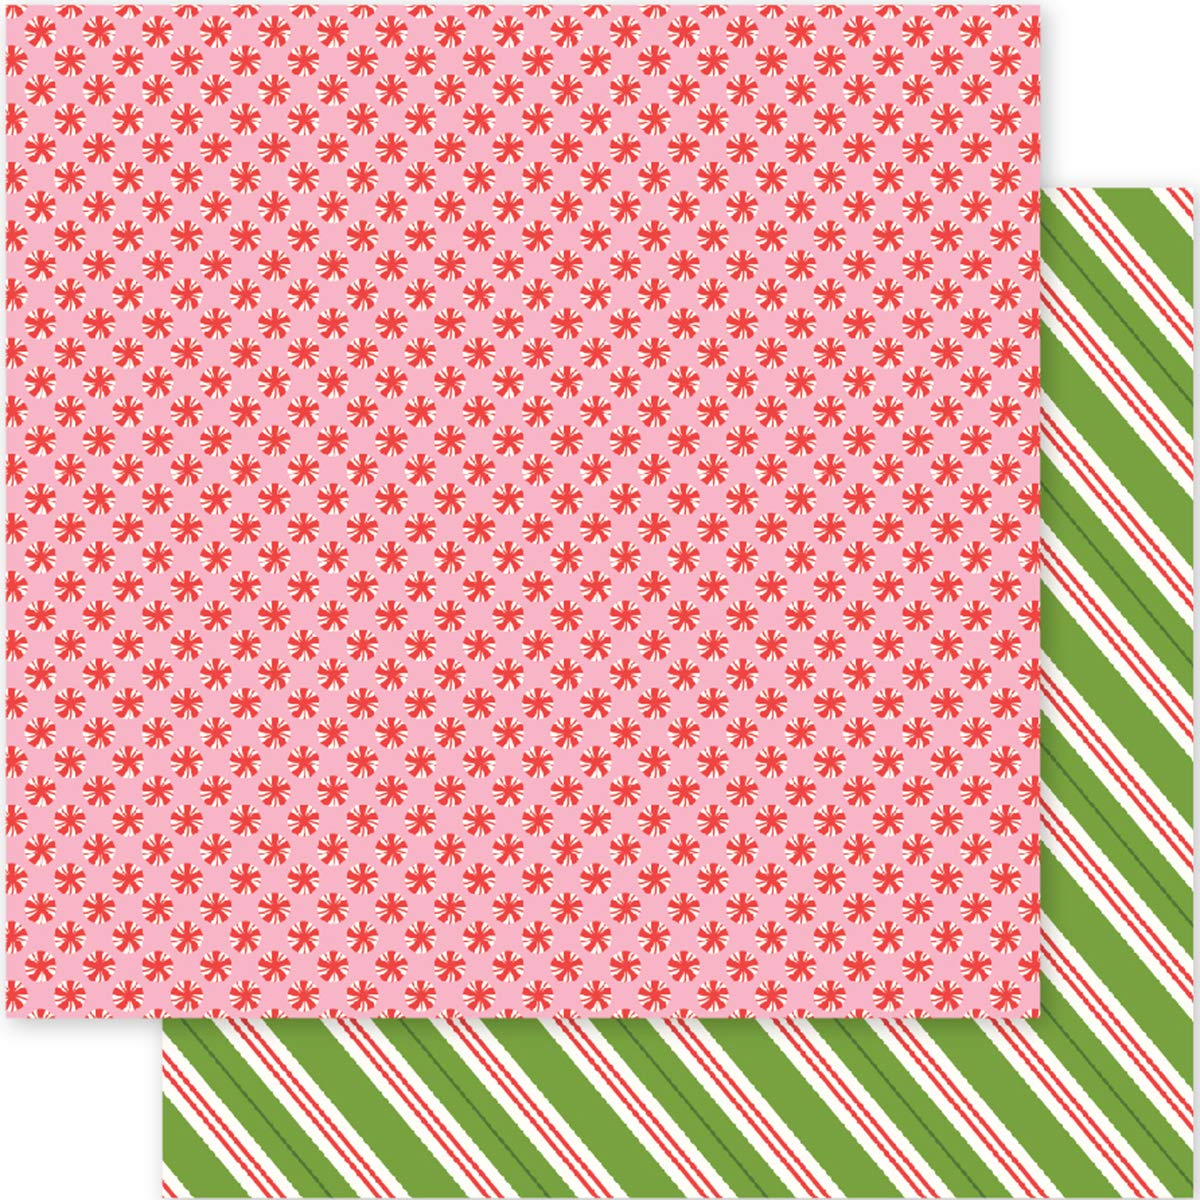 Pebbles Holly Jolly Collection Christmas 12 X 12 Double Sided Paper Peppermts (6 Pack)